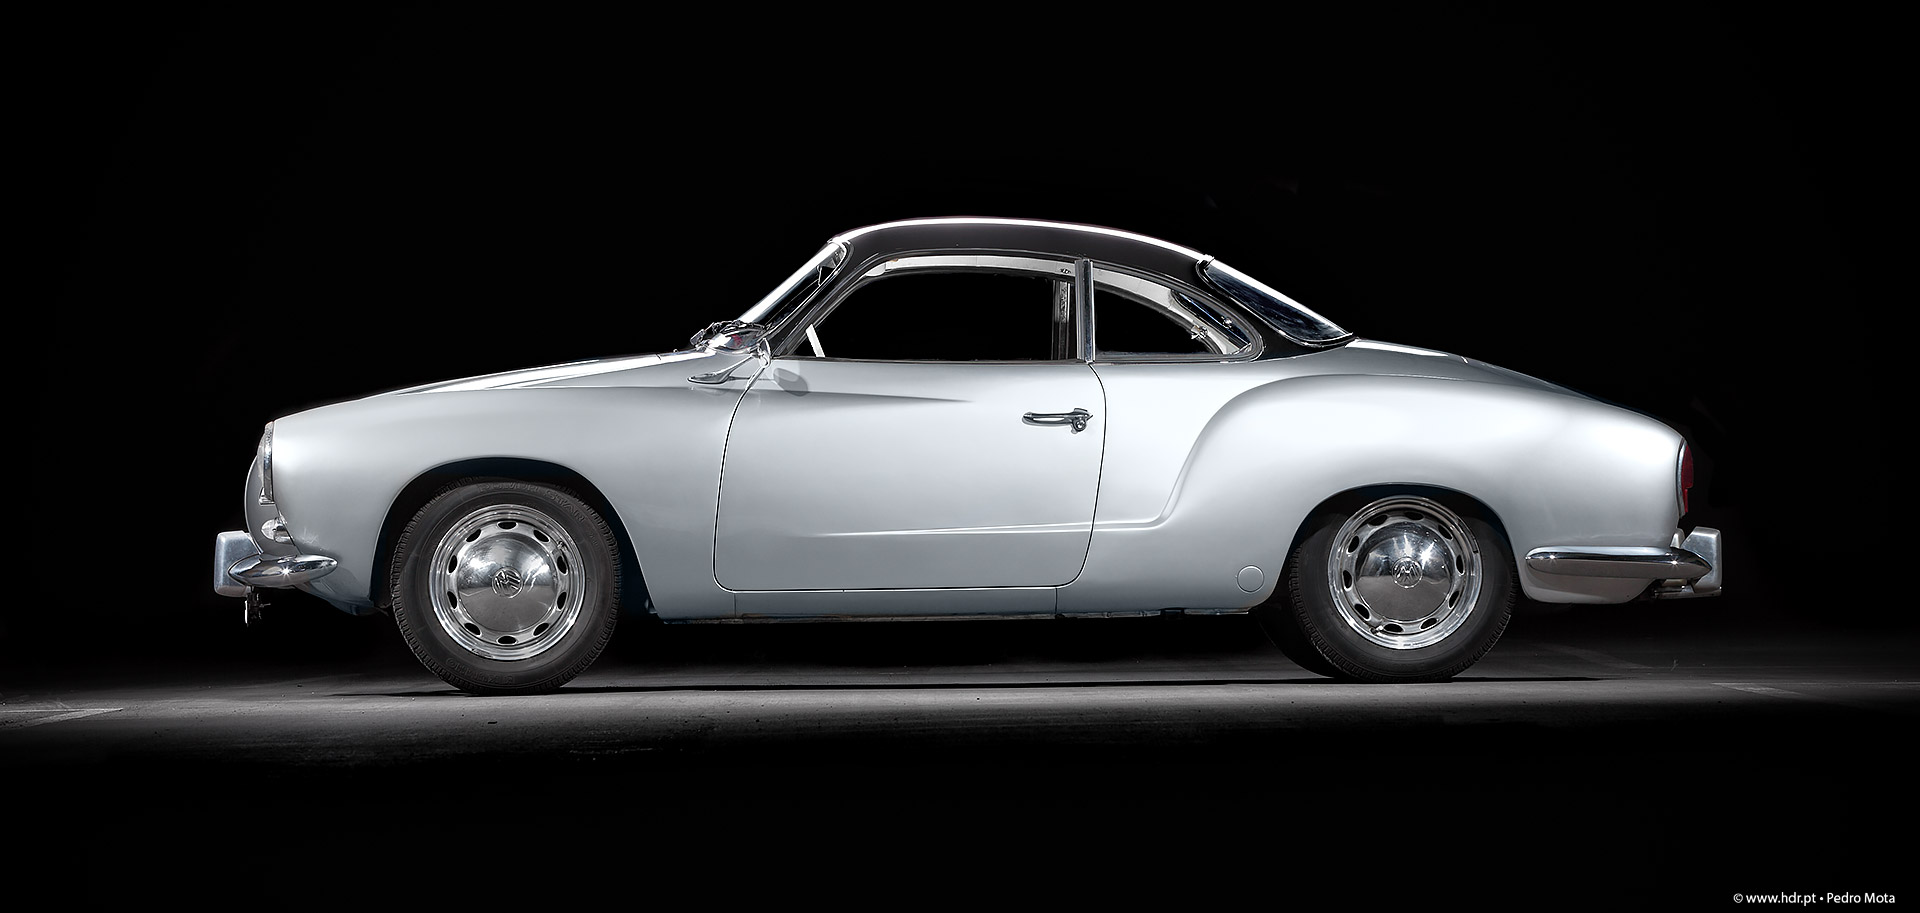 VW Karmann-Ghia Coupé